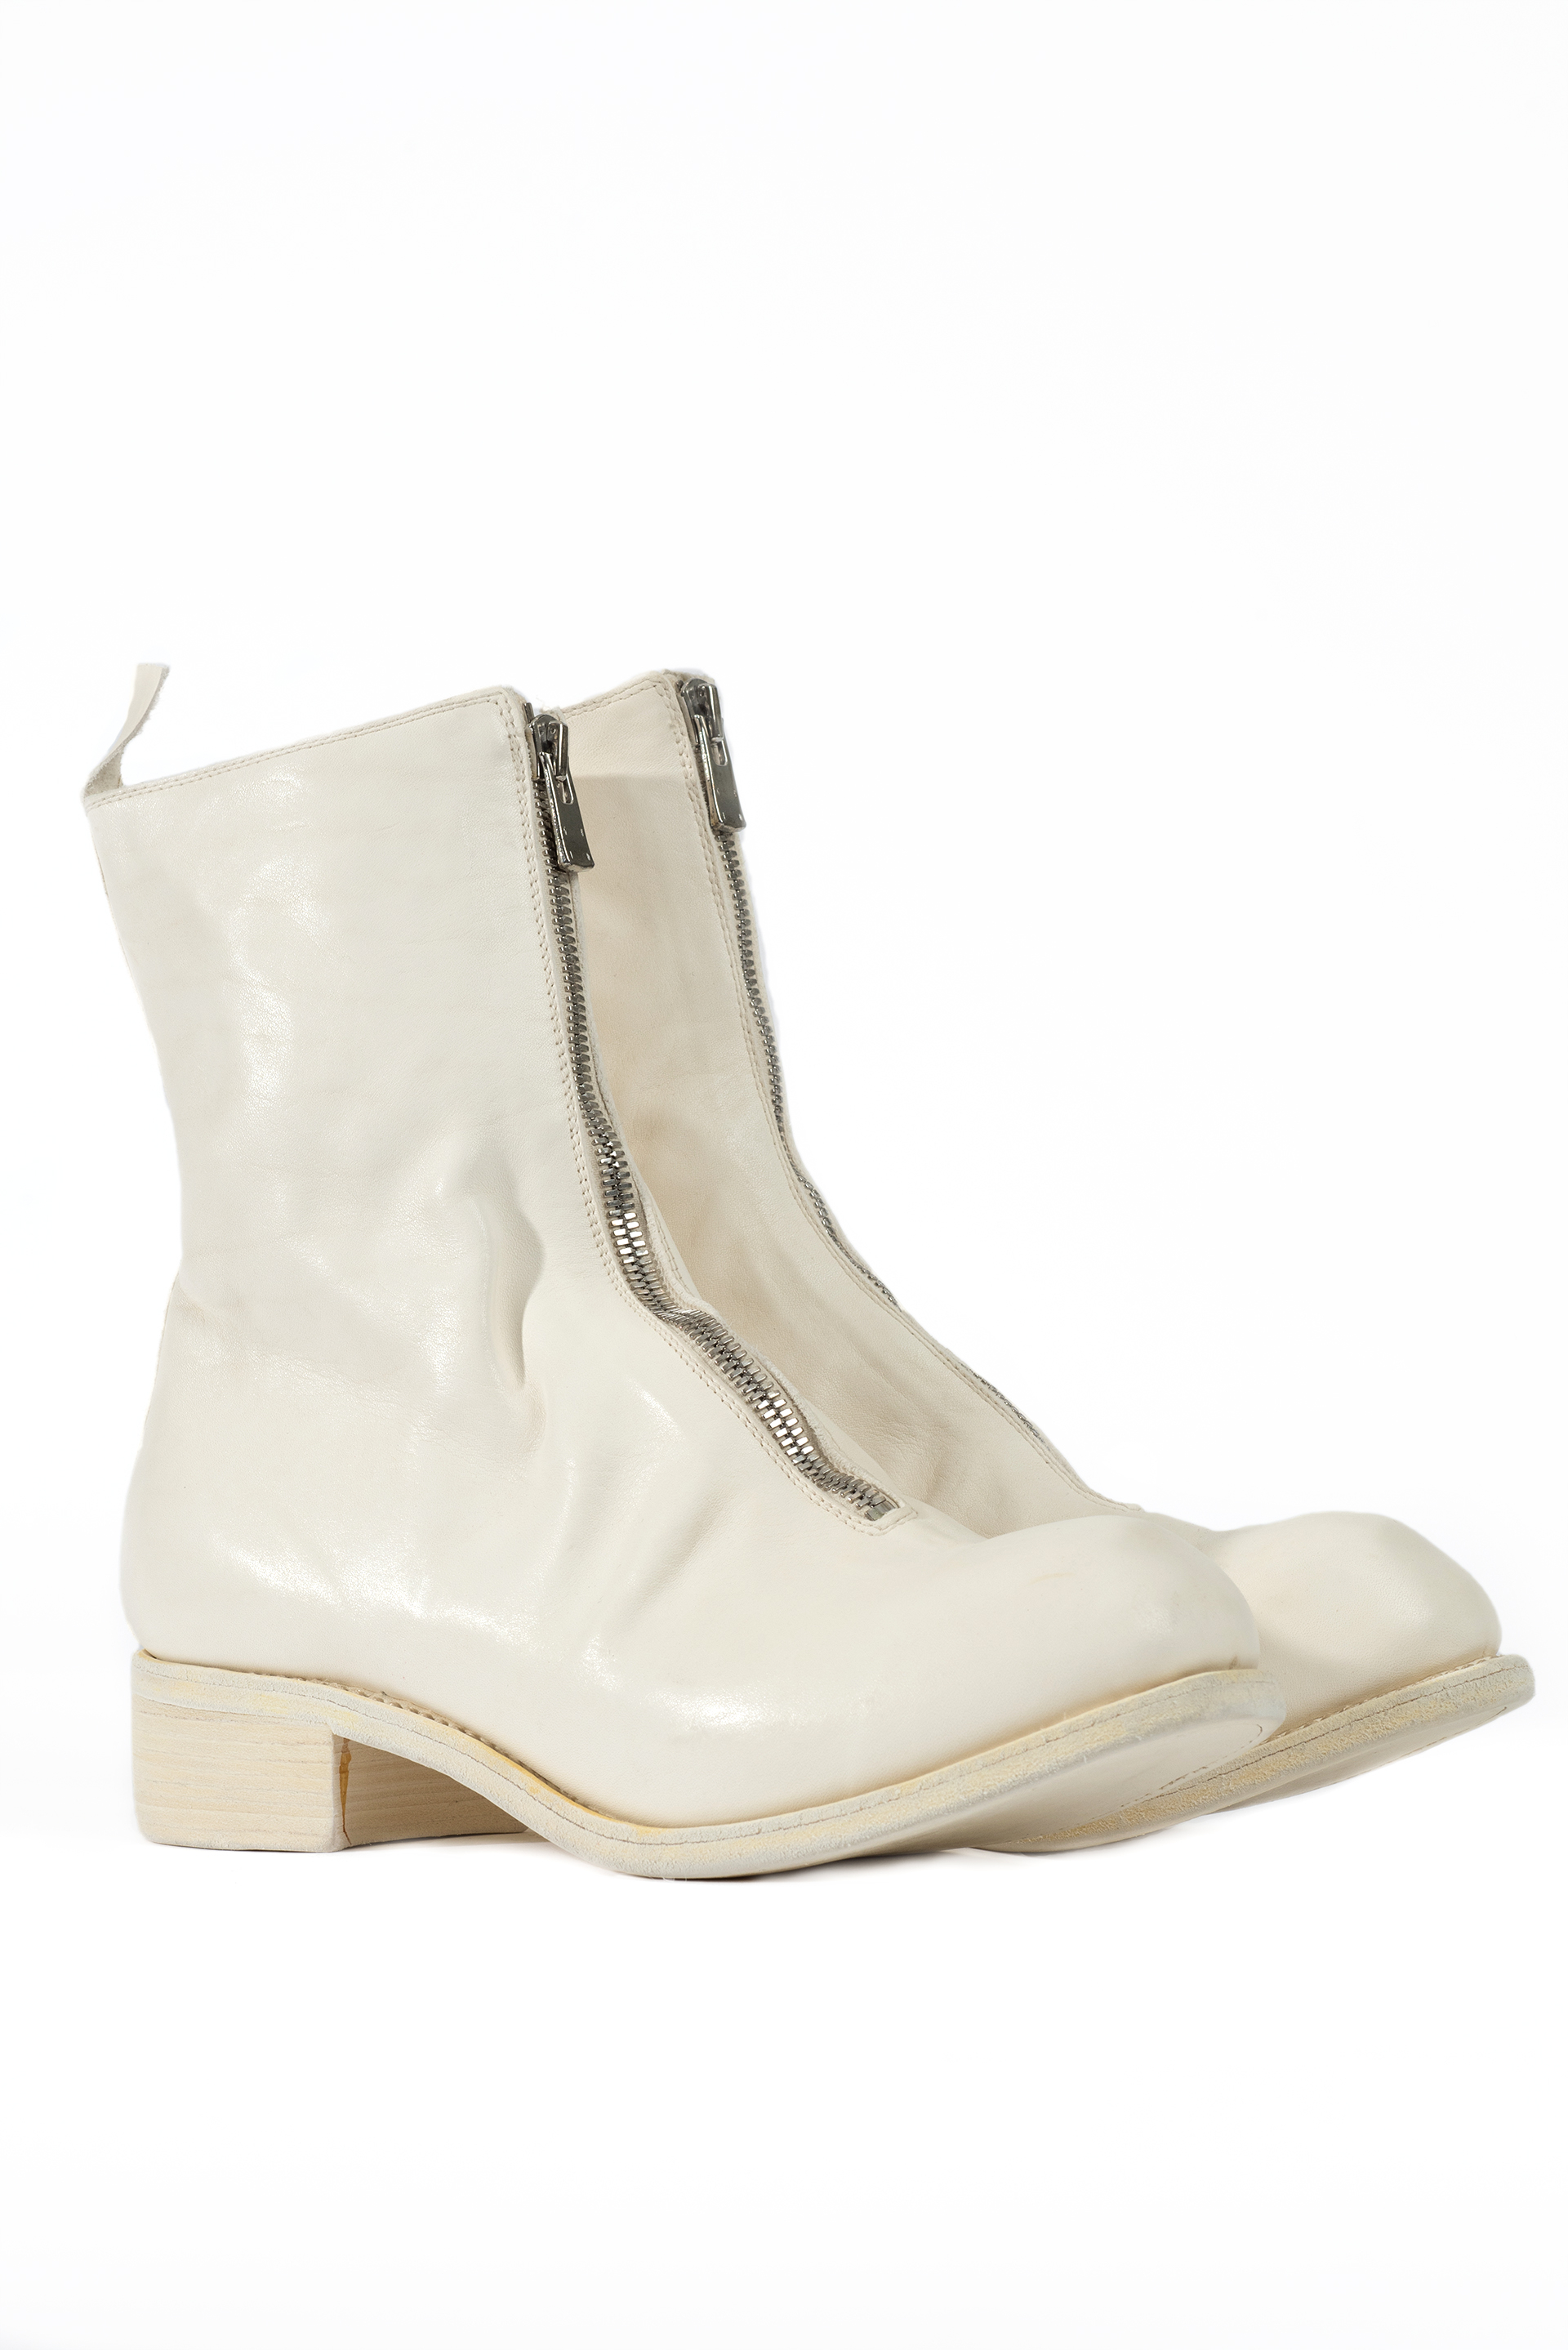 Guidi PL2 Front Zip Boots - White